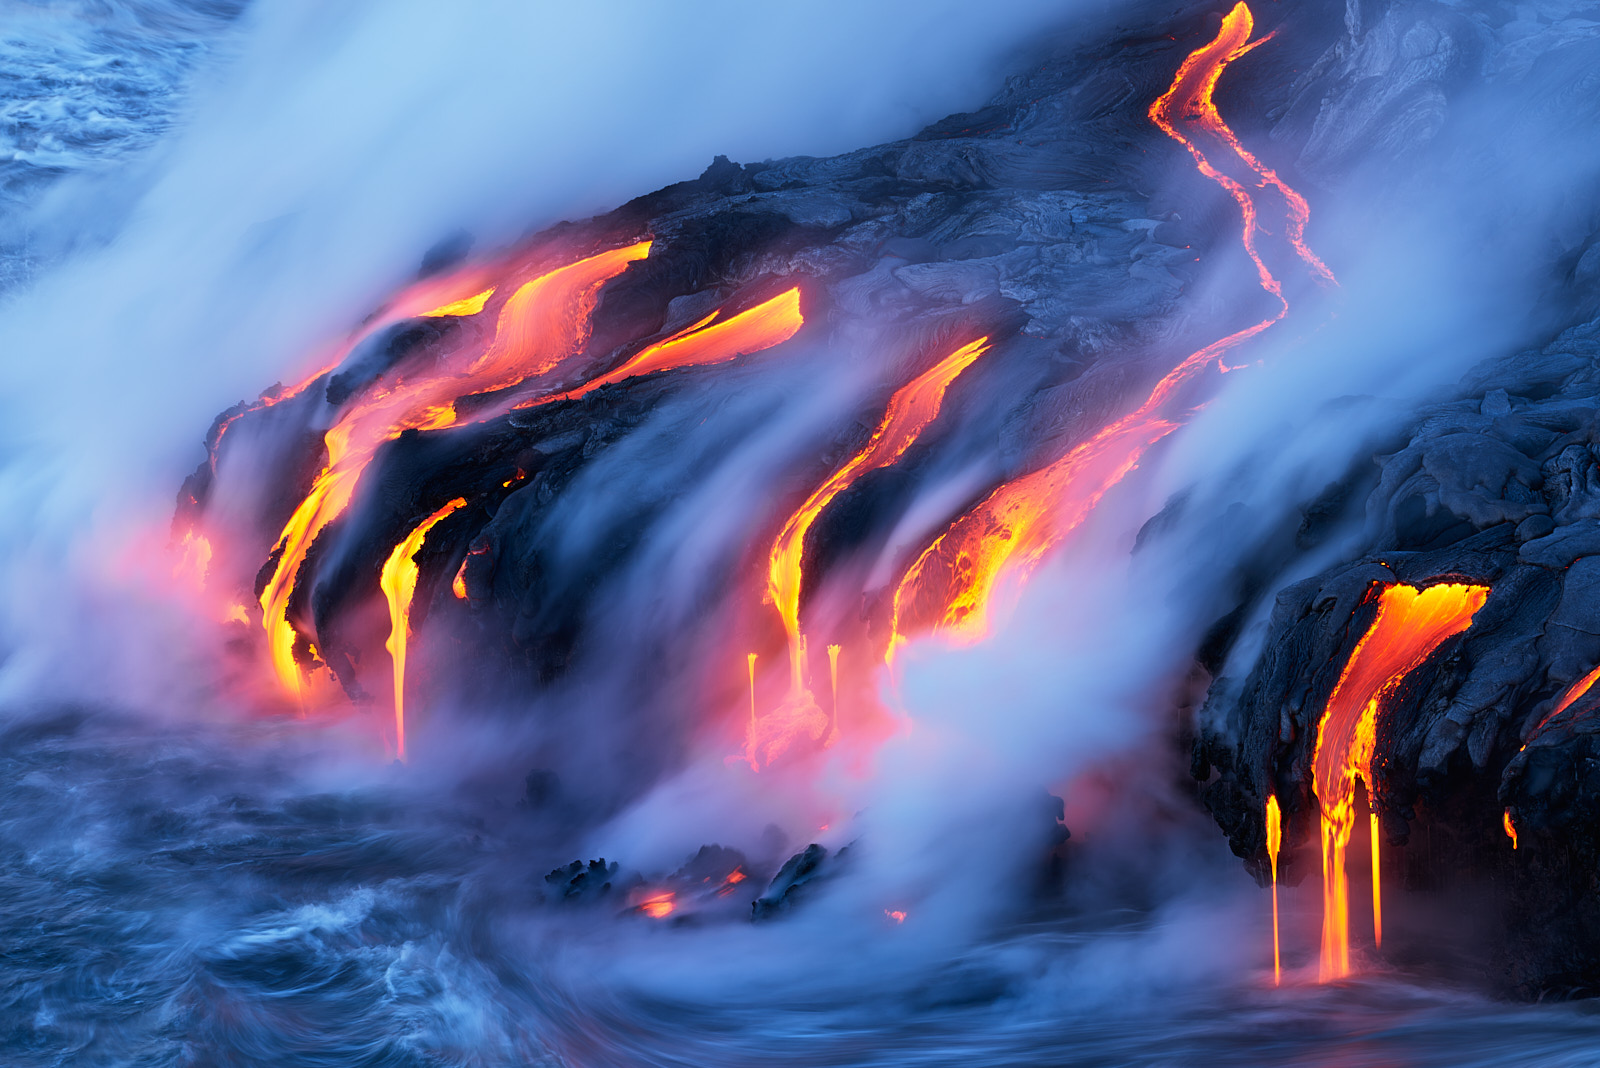 lava entering the ocean just before sunrise on the Big Island of Hawaii at Volcanoes National Park.